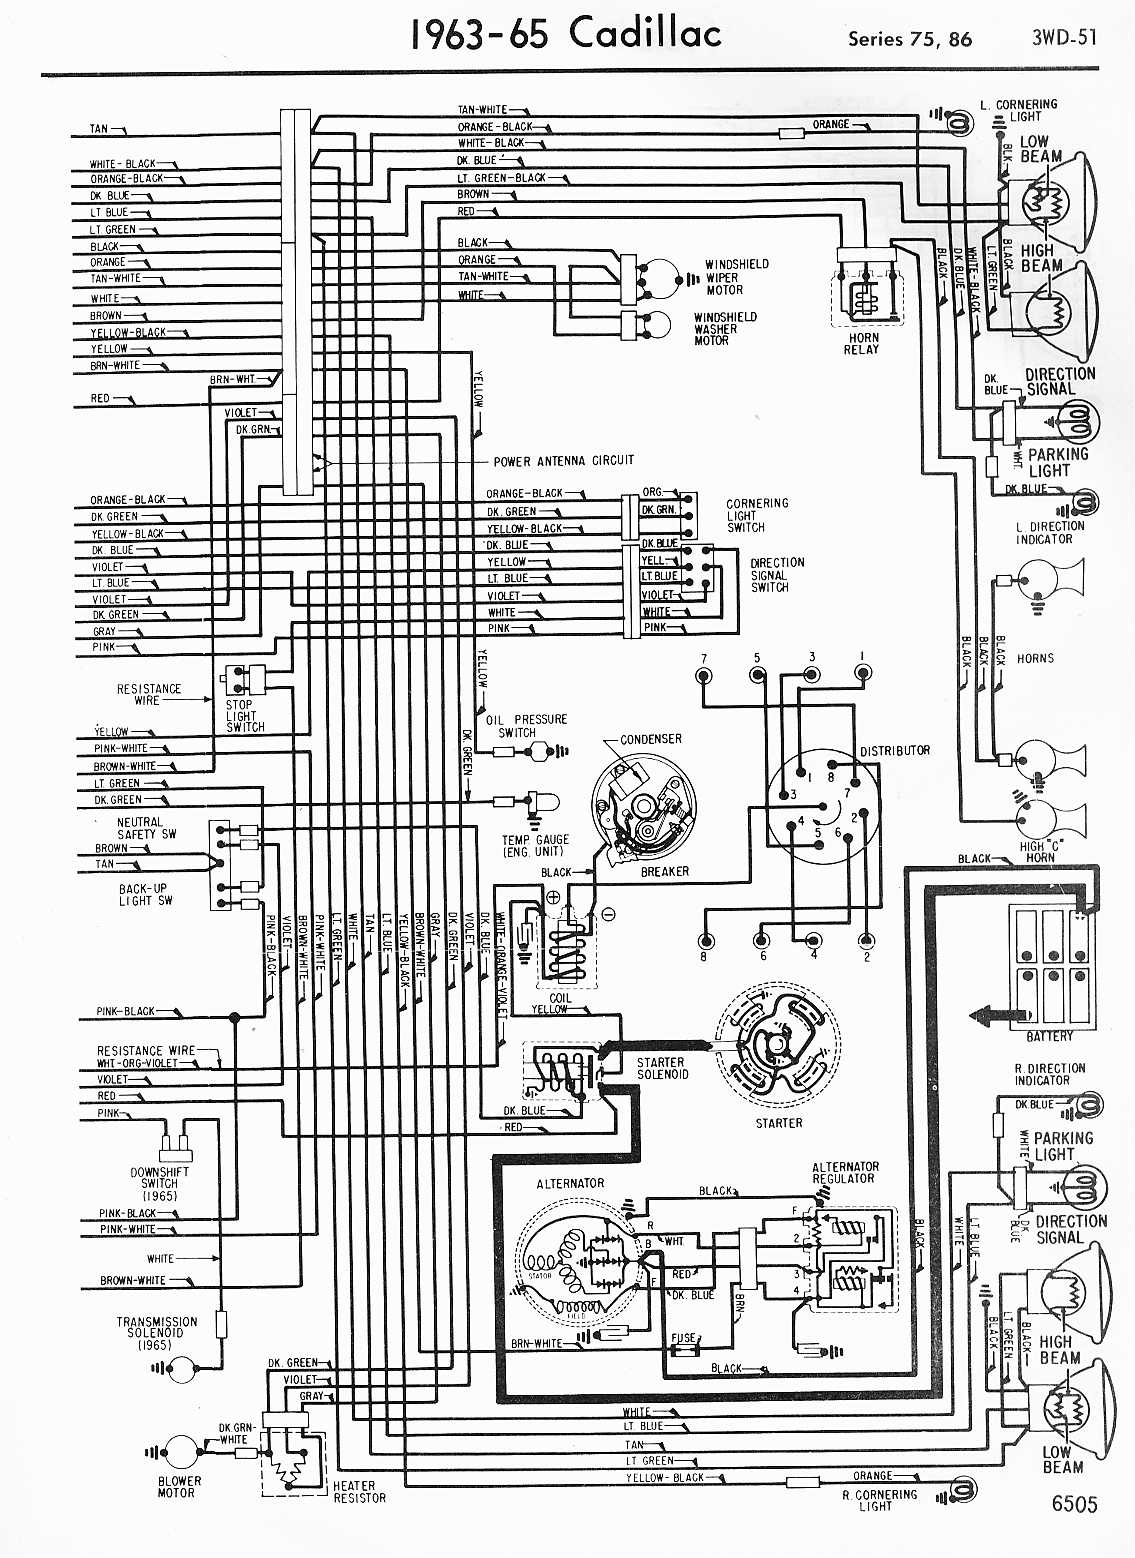 [SCHEMATICS_4FD]  Cadillac Northstar Alternator Wiring - 2002 Ford Taurus Power Window Wiring  Diagram for Wiring Diagram Schematics | 1966 Ford Alternator Diagram Wiring Schematic |  | Wiring Diagram Schematics